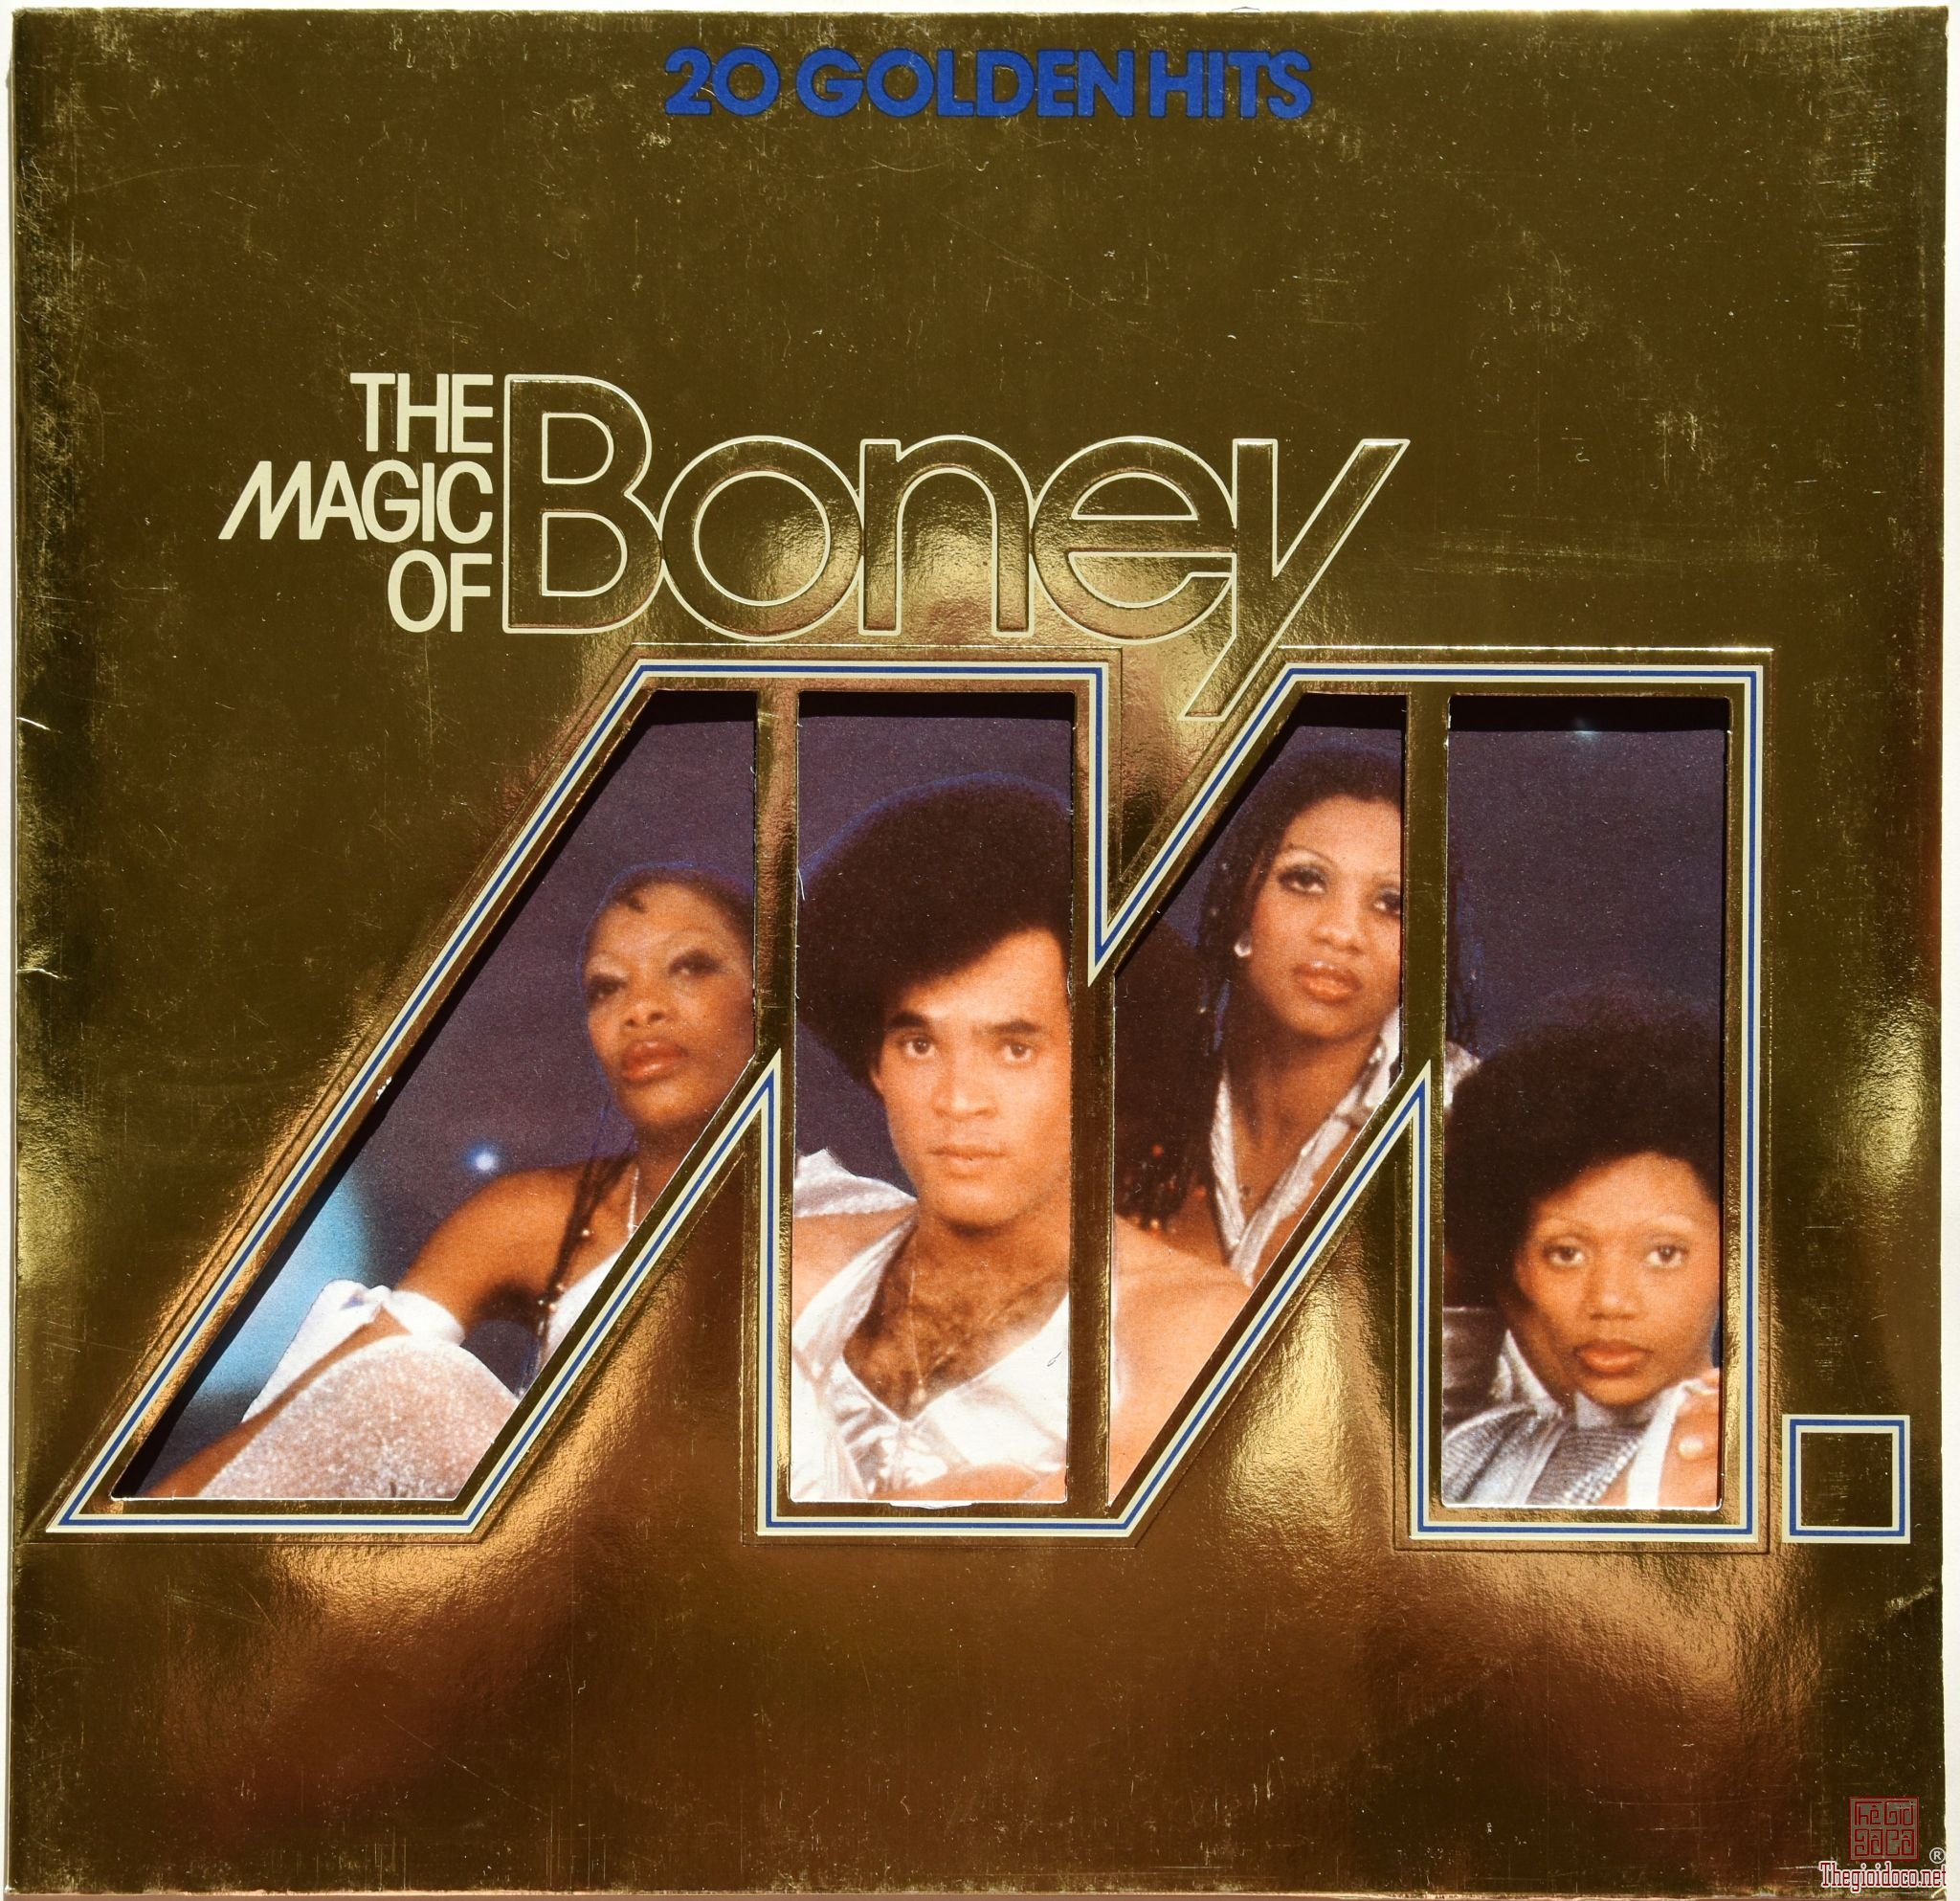 Đĩa than LP Boney M (20 Golden Hits - The Magic Of Boney M) Giá bán = 800 nghìn đồng